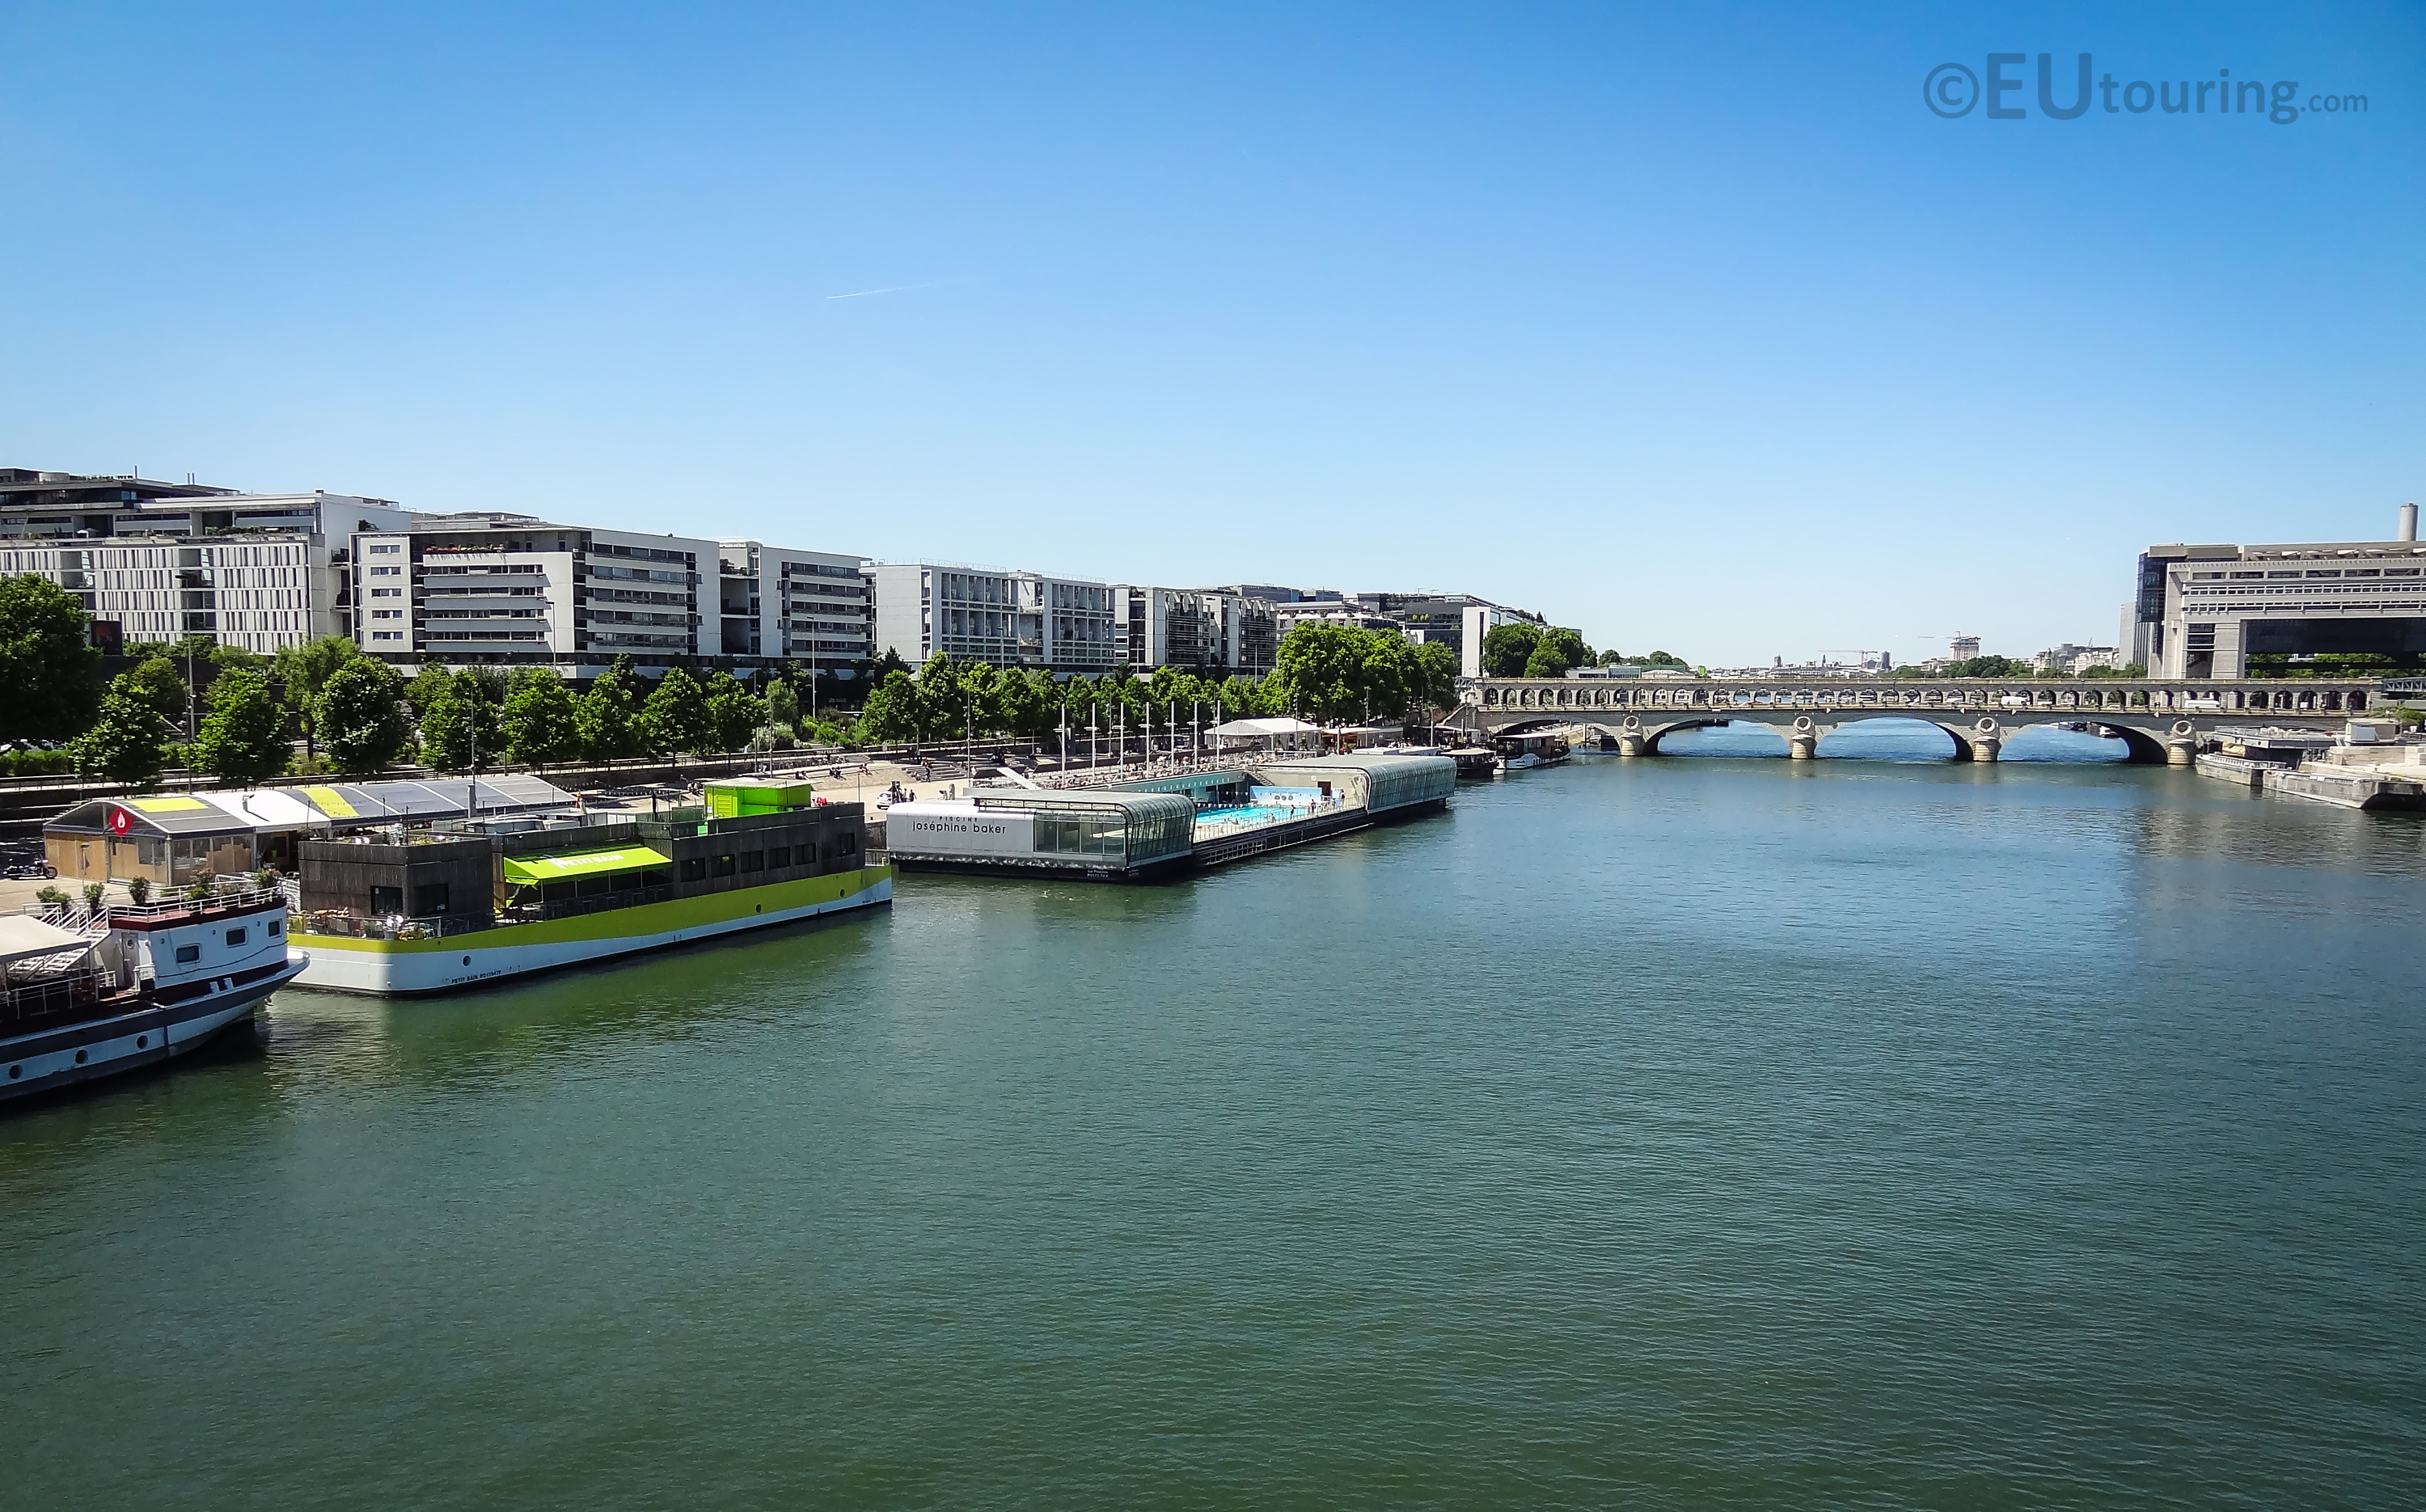 The wide Seine and boats